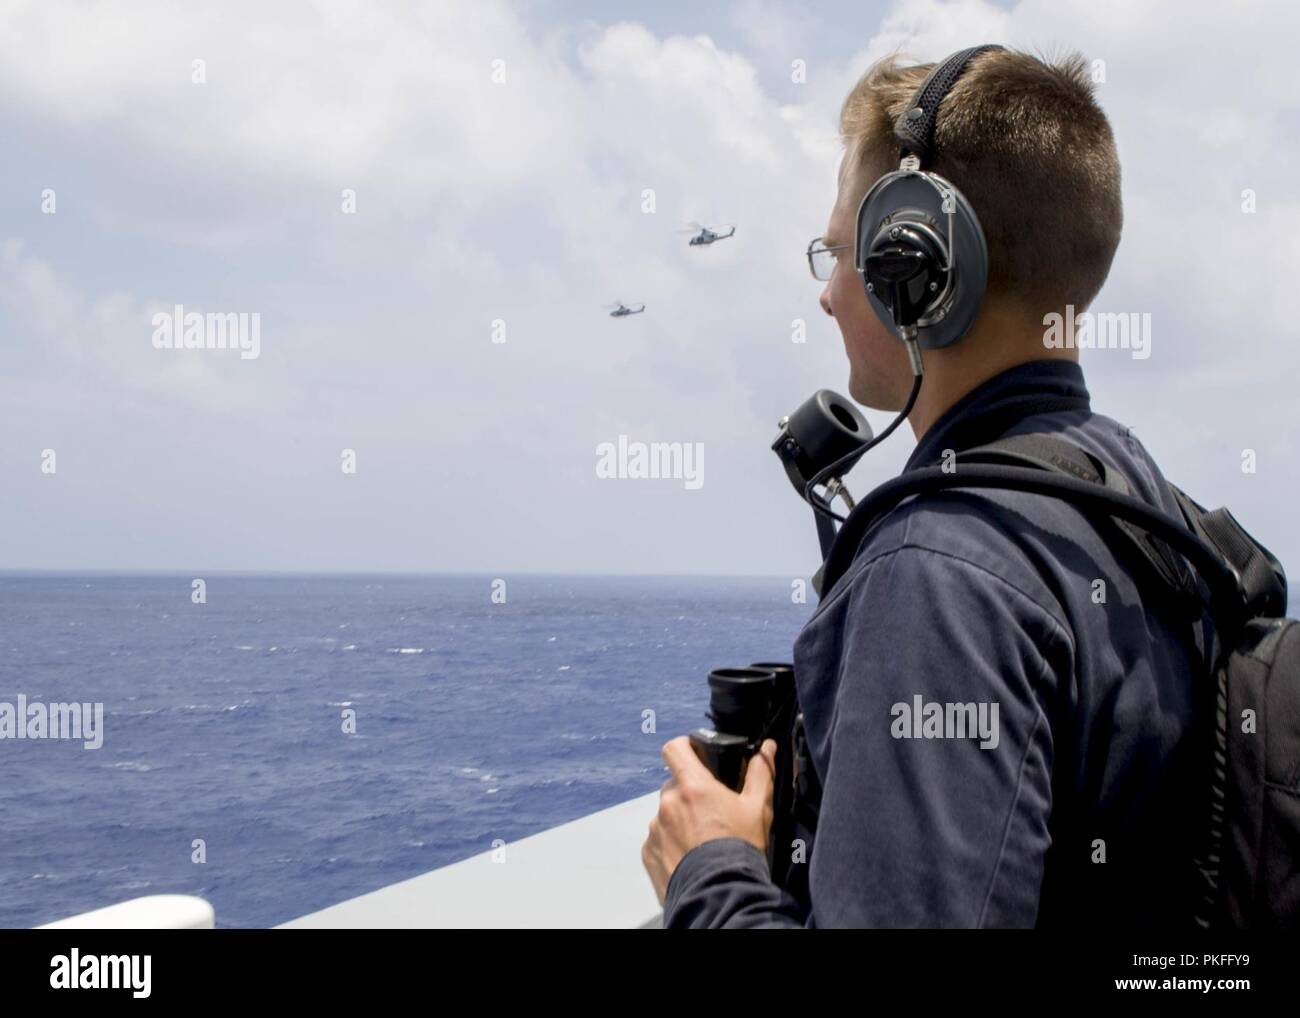 PACIFIC OCEAN (August 9, 2018) Seaman Spencer Englert, from Wichita, Kan., stands look out watch aboard San Antonio-class amphibious transport dock USS Anchorage (LPD 23) during a regularly scheduled deployment of the Essex Amphibious Ready Group (ARG) and 13th Marine Expeditionary Unit (MEU). The Essex ARG/MEU team is a strong and flexible force equipped and scalable to respond to any crisis ranging from humanitarian assistance and disaster relief to contingency operations. - Stock Image